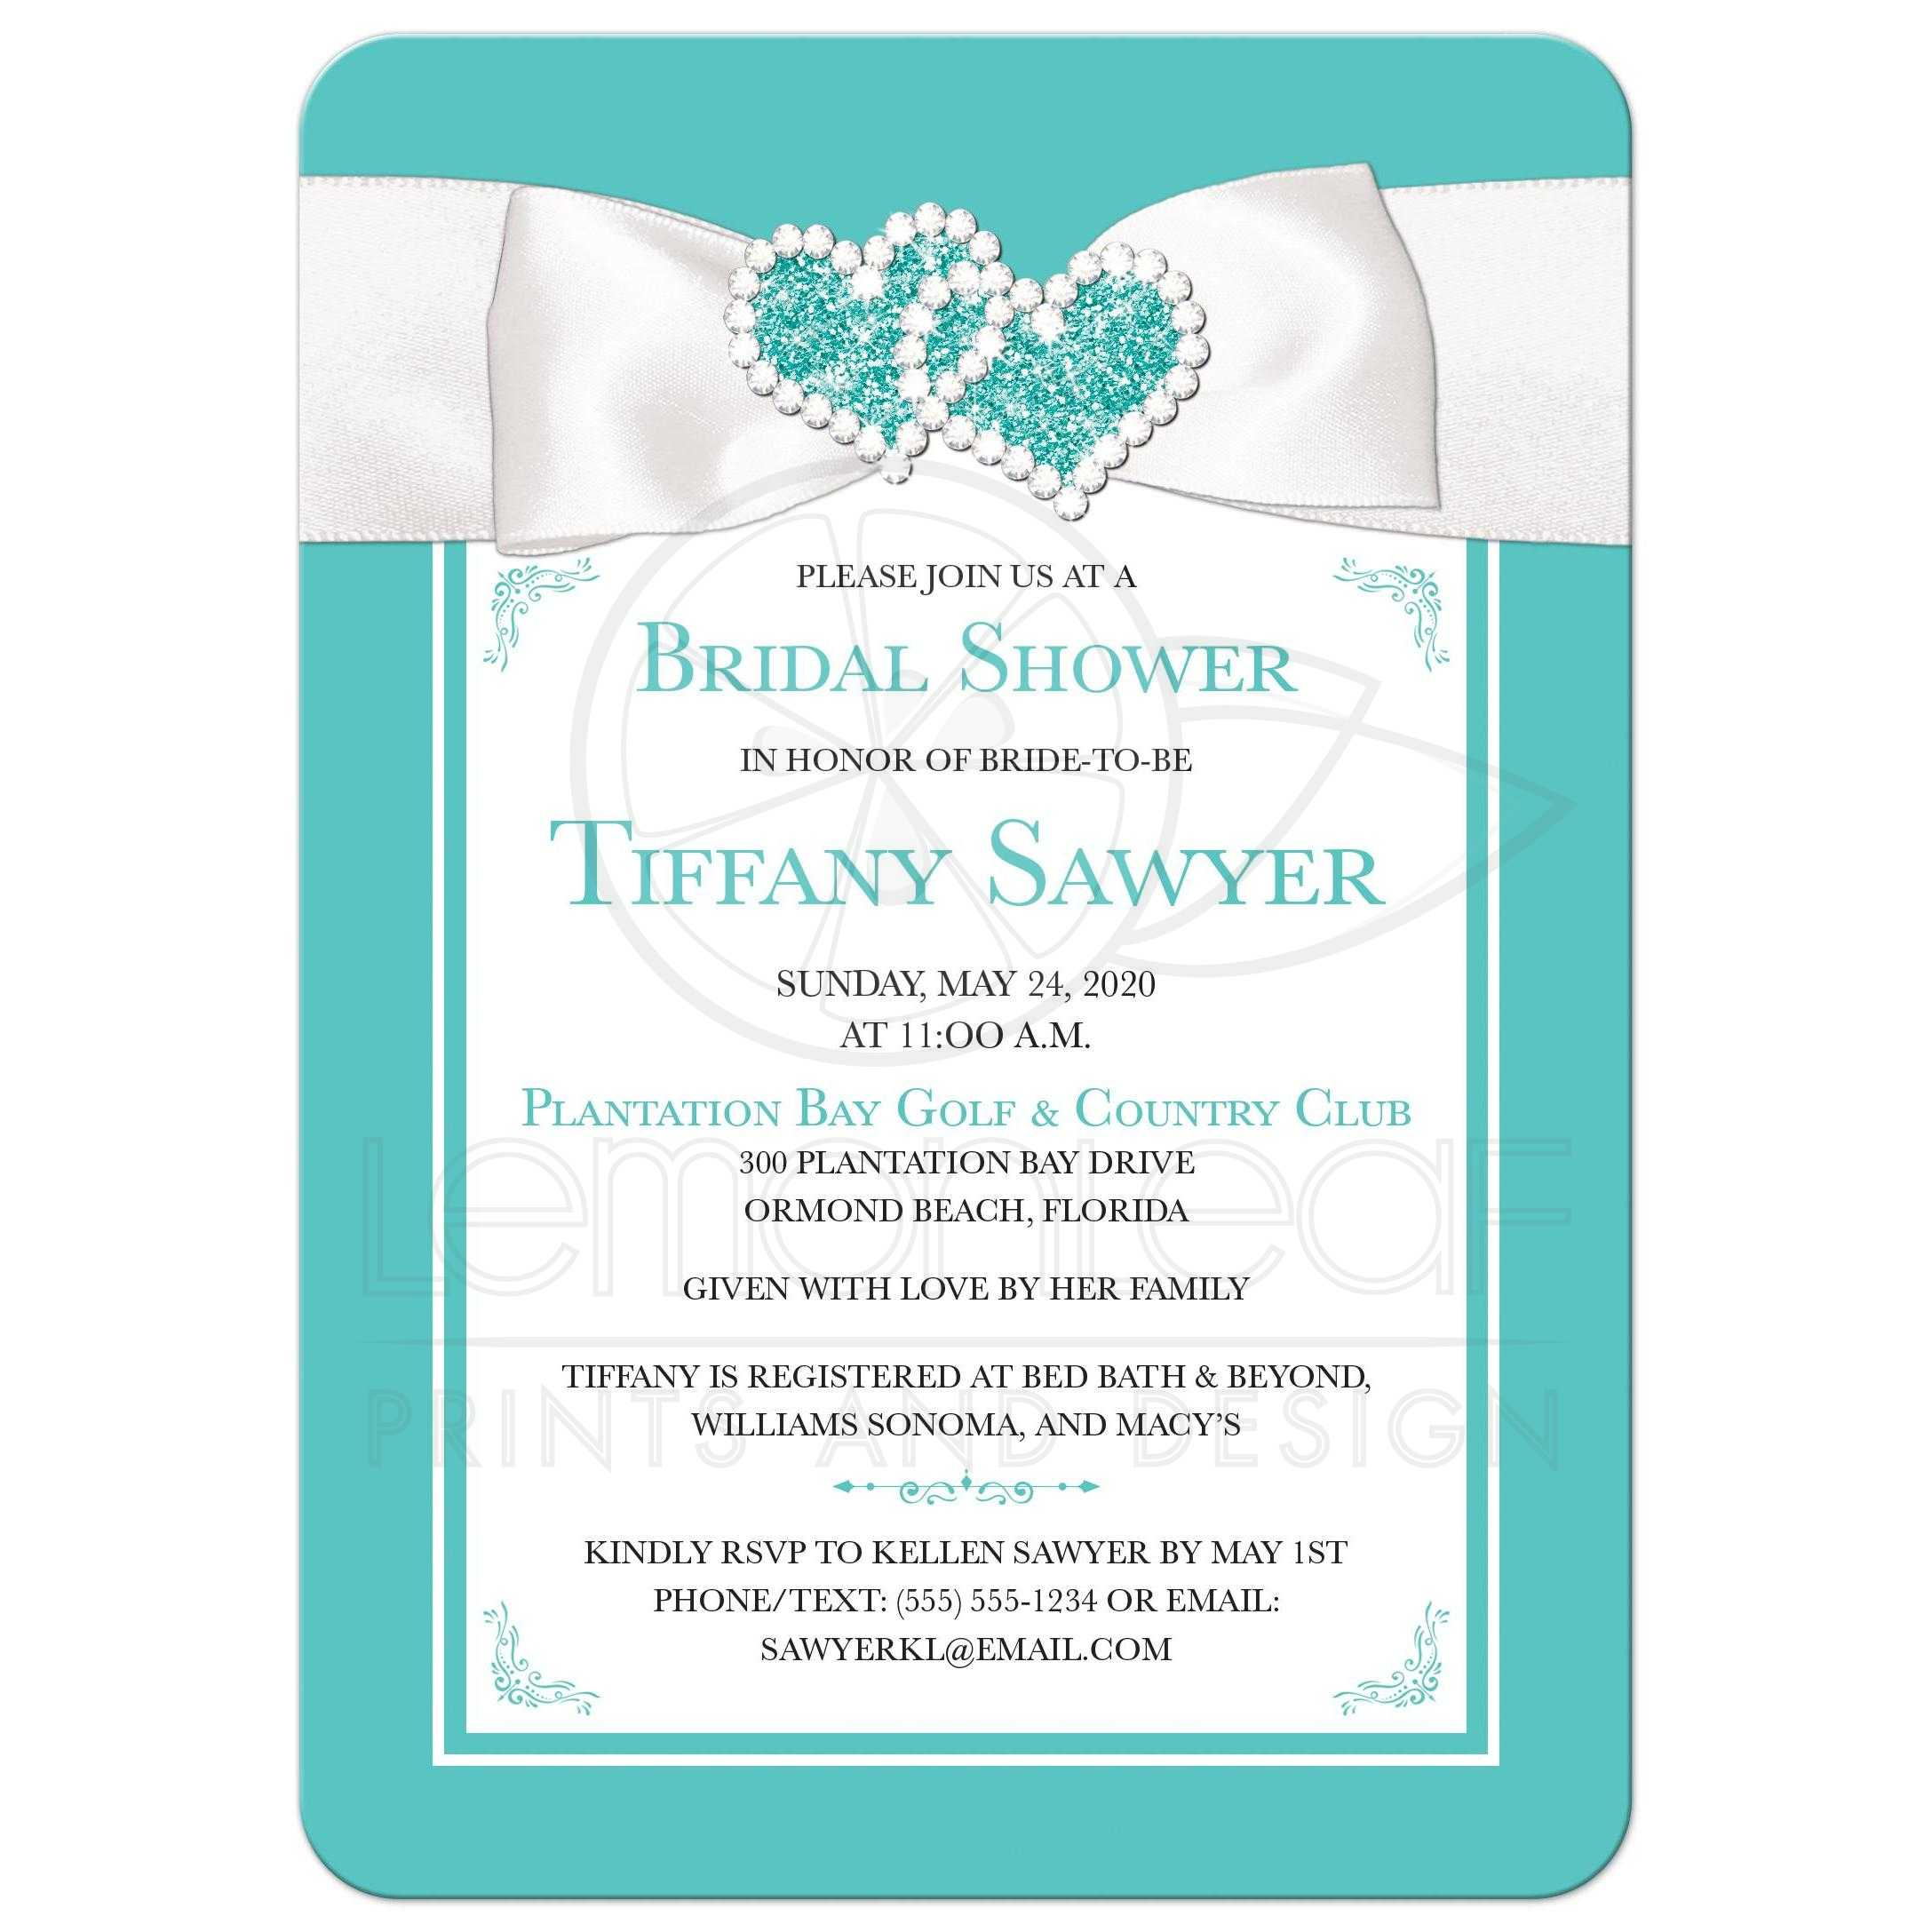 Wedding Party Invitations: Lux Teal Blue And White Bridal Shower Invite, PRINTED ON